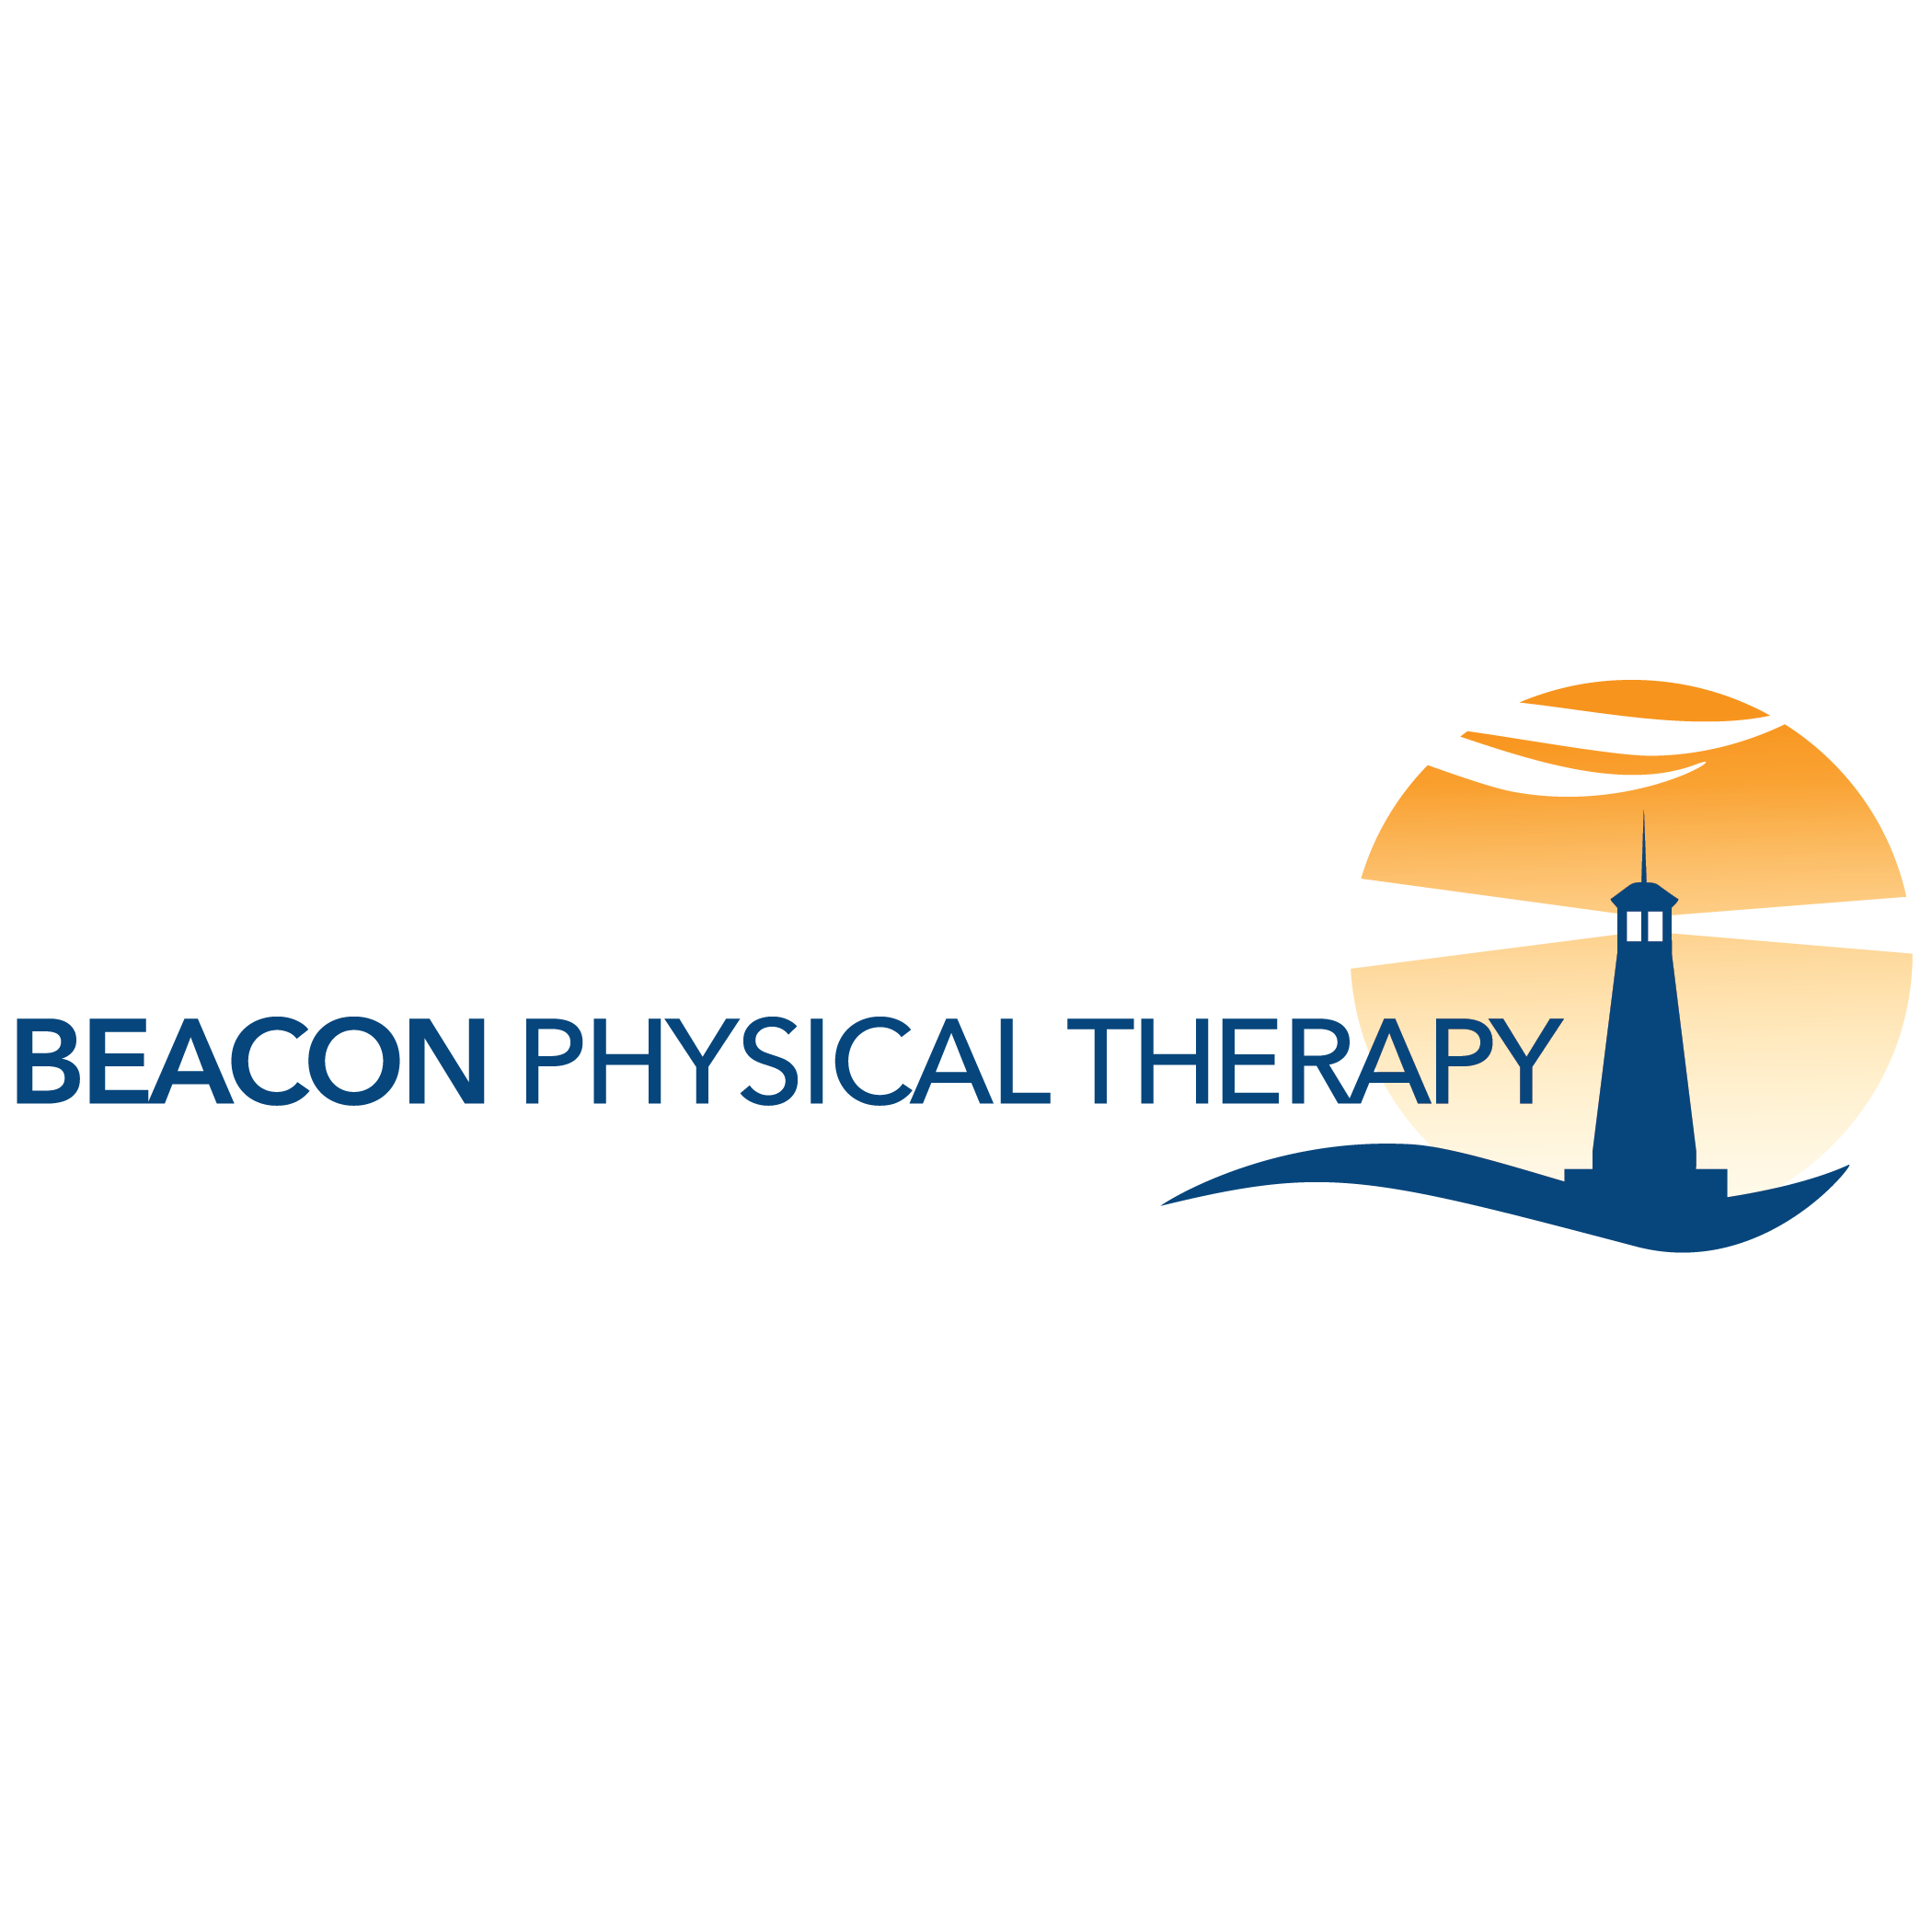 Beacon Physical Therapy